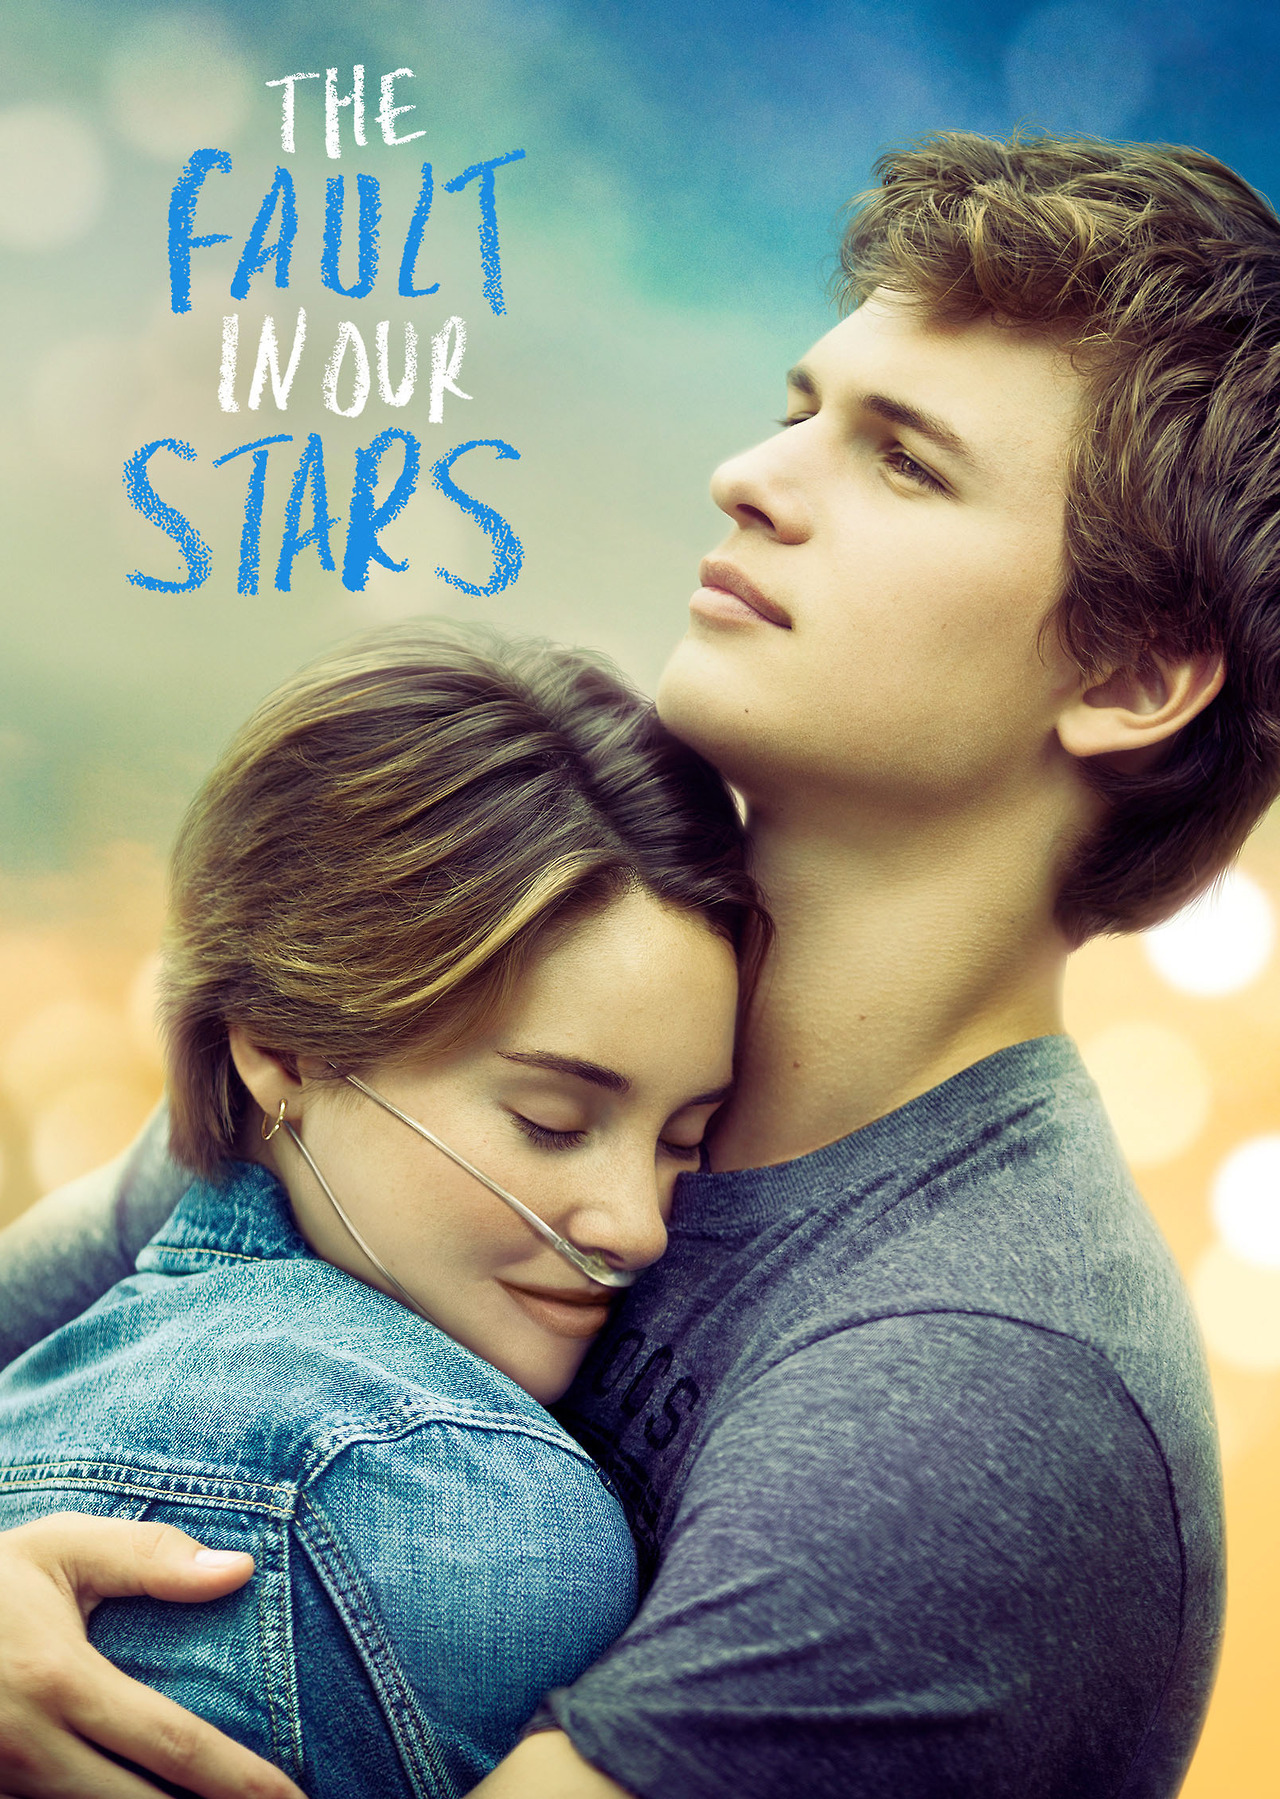 FileThe Fault in Our Stars The Fault In Our Stars Official Poster